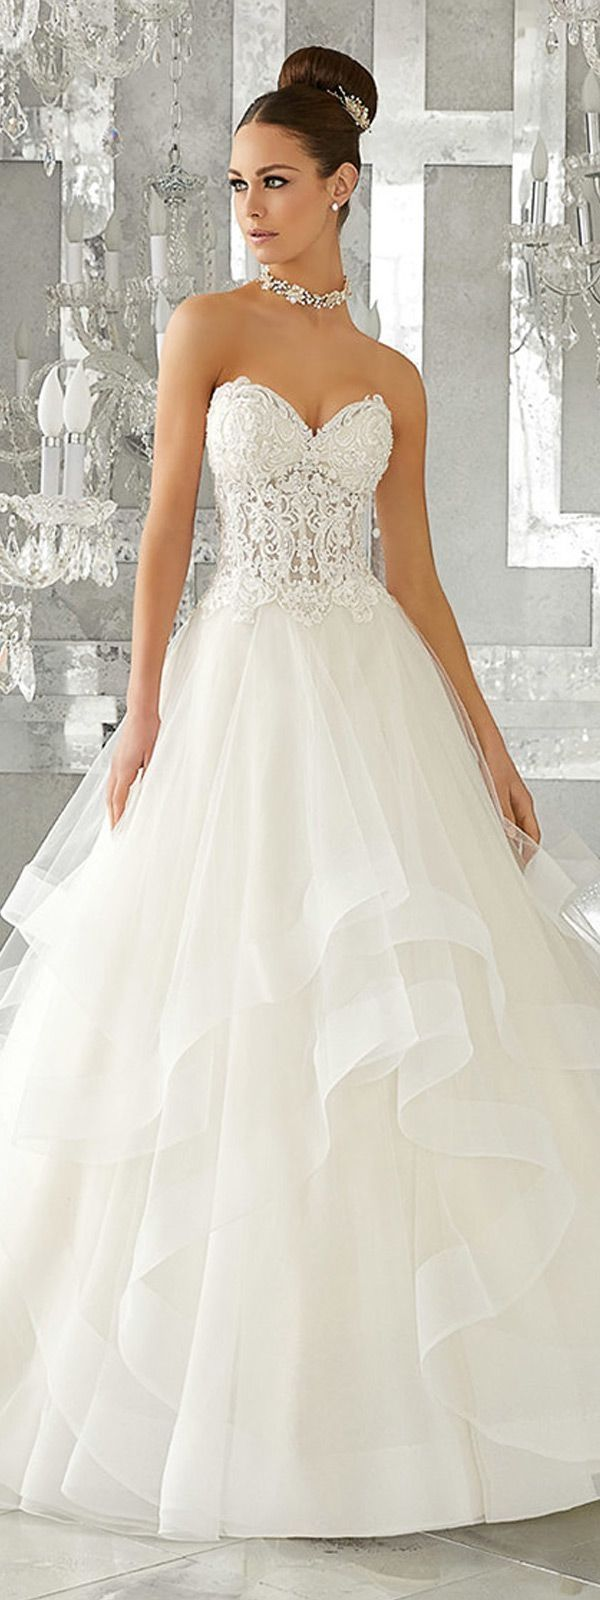 Cheap country lace wedding dresses  Amazing Tulle Sweetheart Neckline Seethrough ALine Wedding Dresses